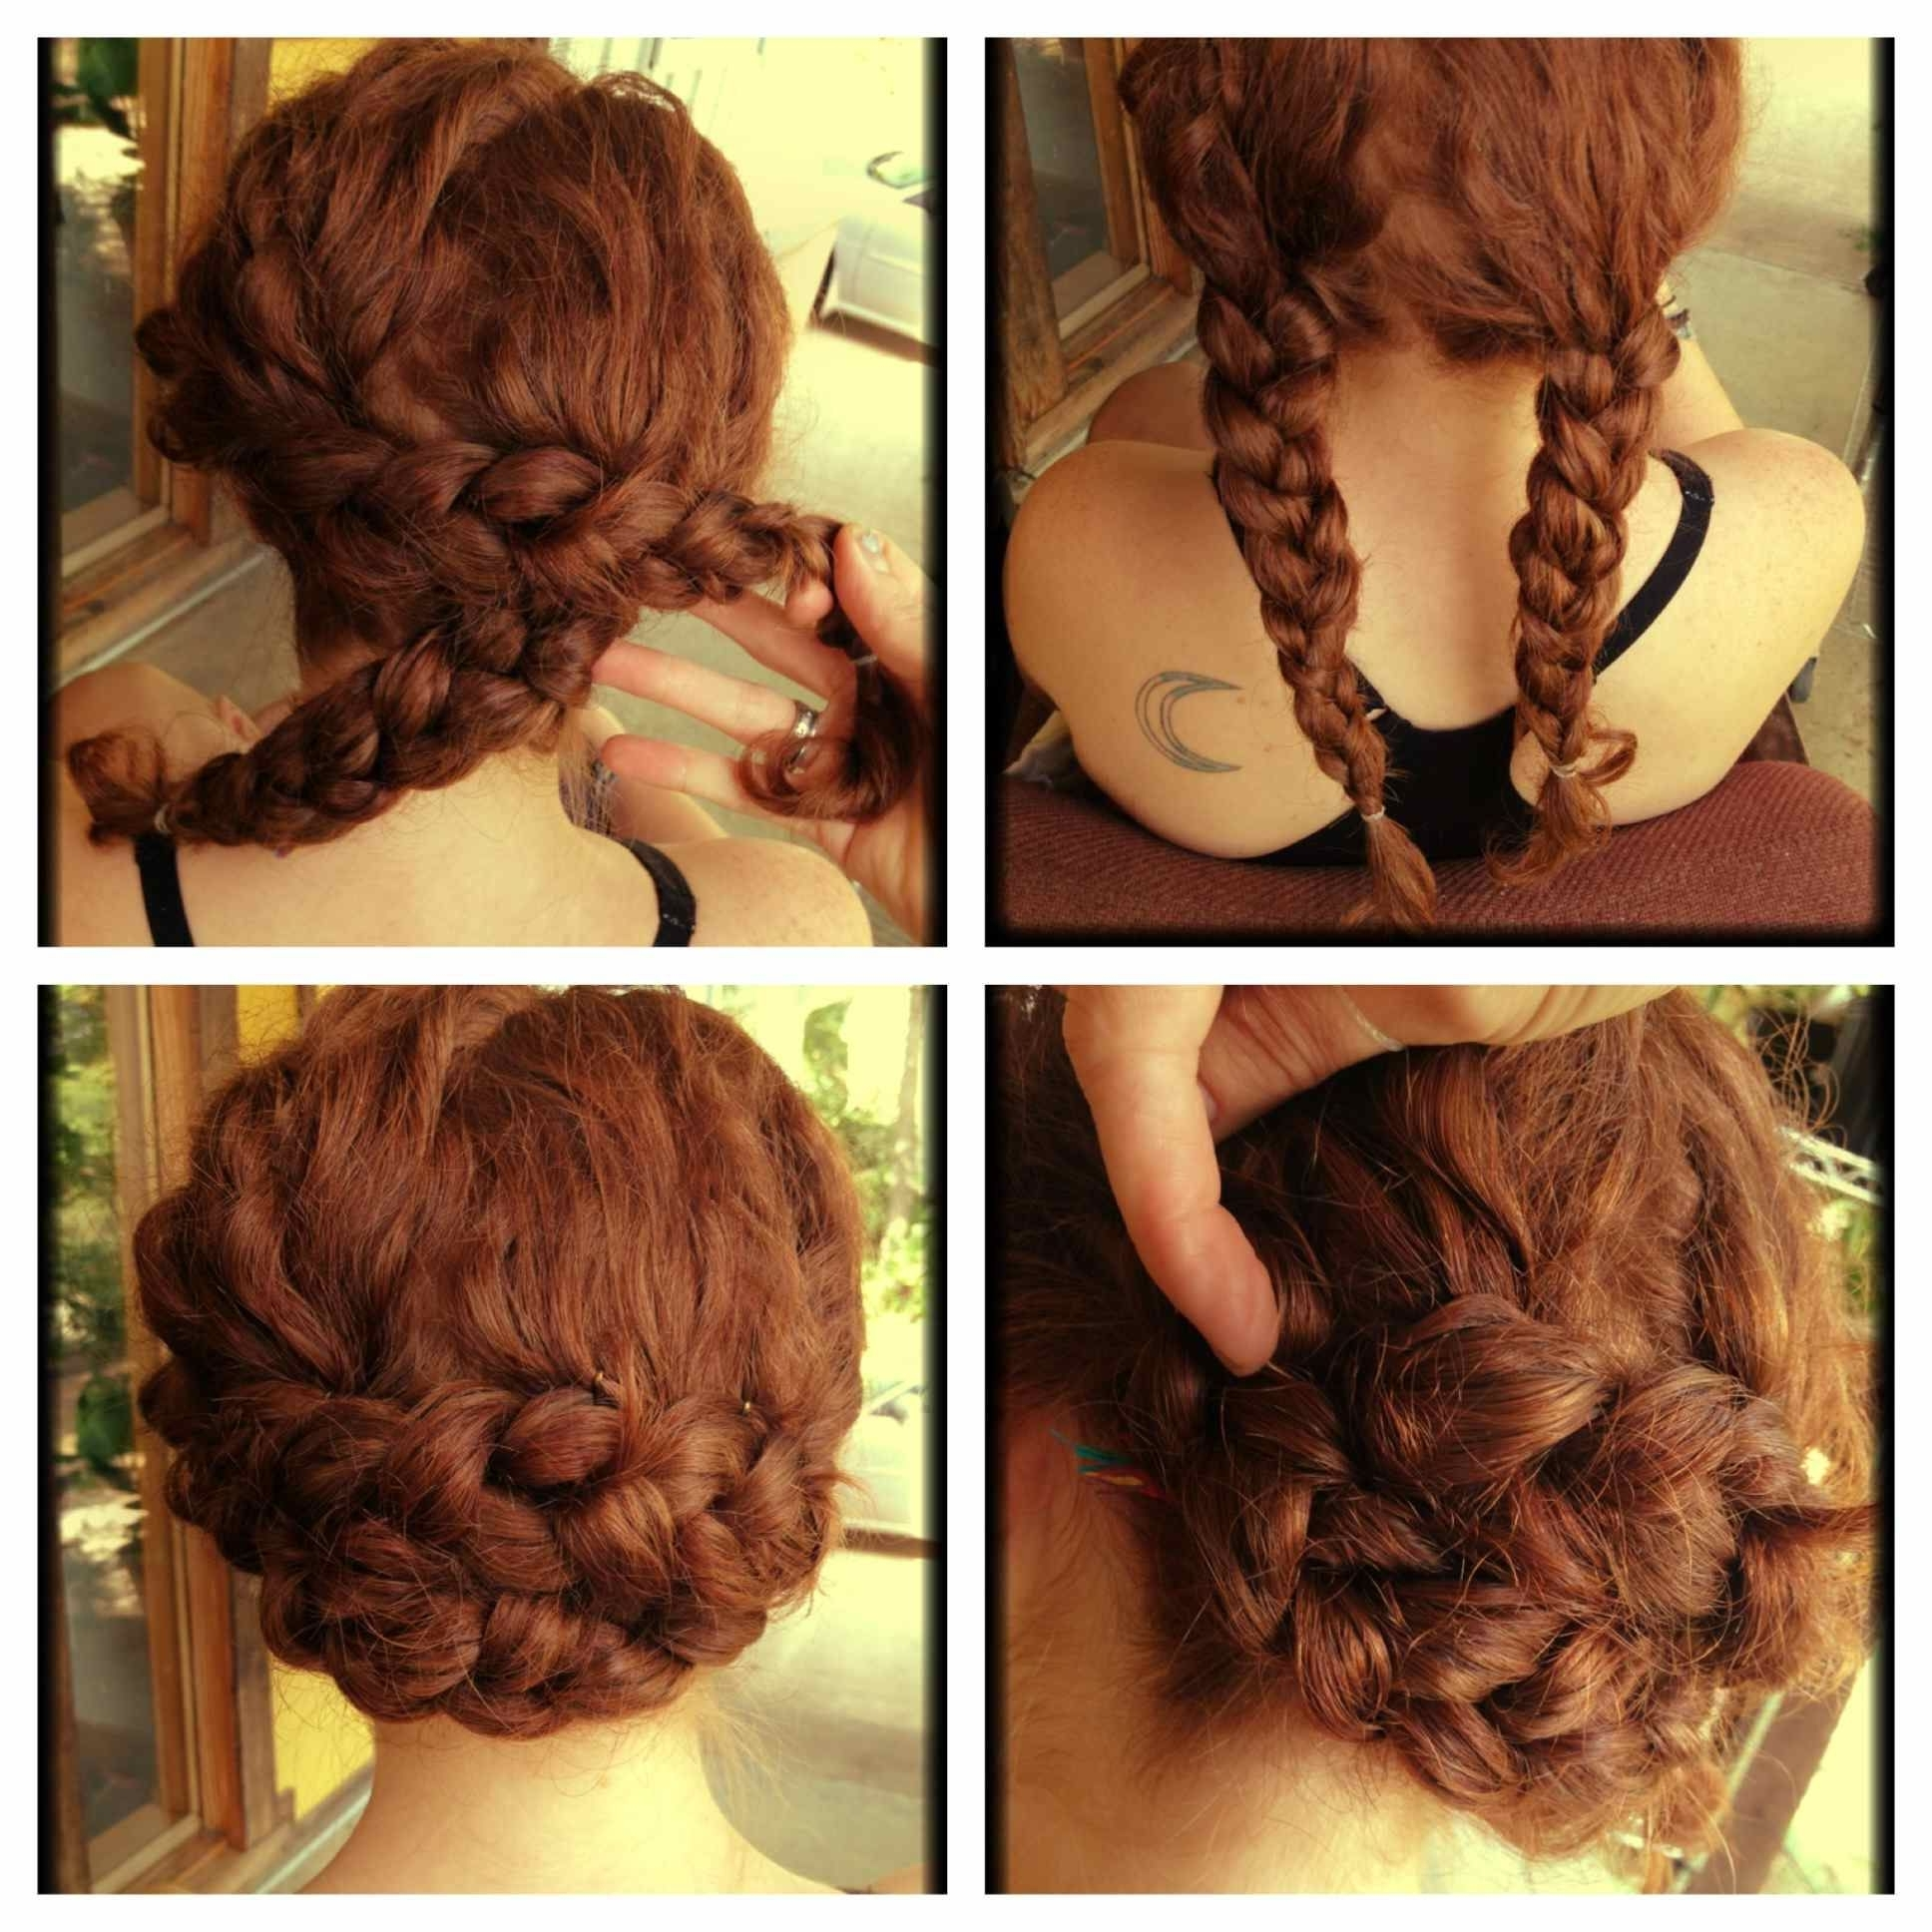 Such A Good, Quick Hairstyle For Us Curlys | Hairstyles | Pinterest Throughout Quick Updo Hairstyles For Curly Hair (View 15 of 15)